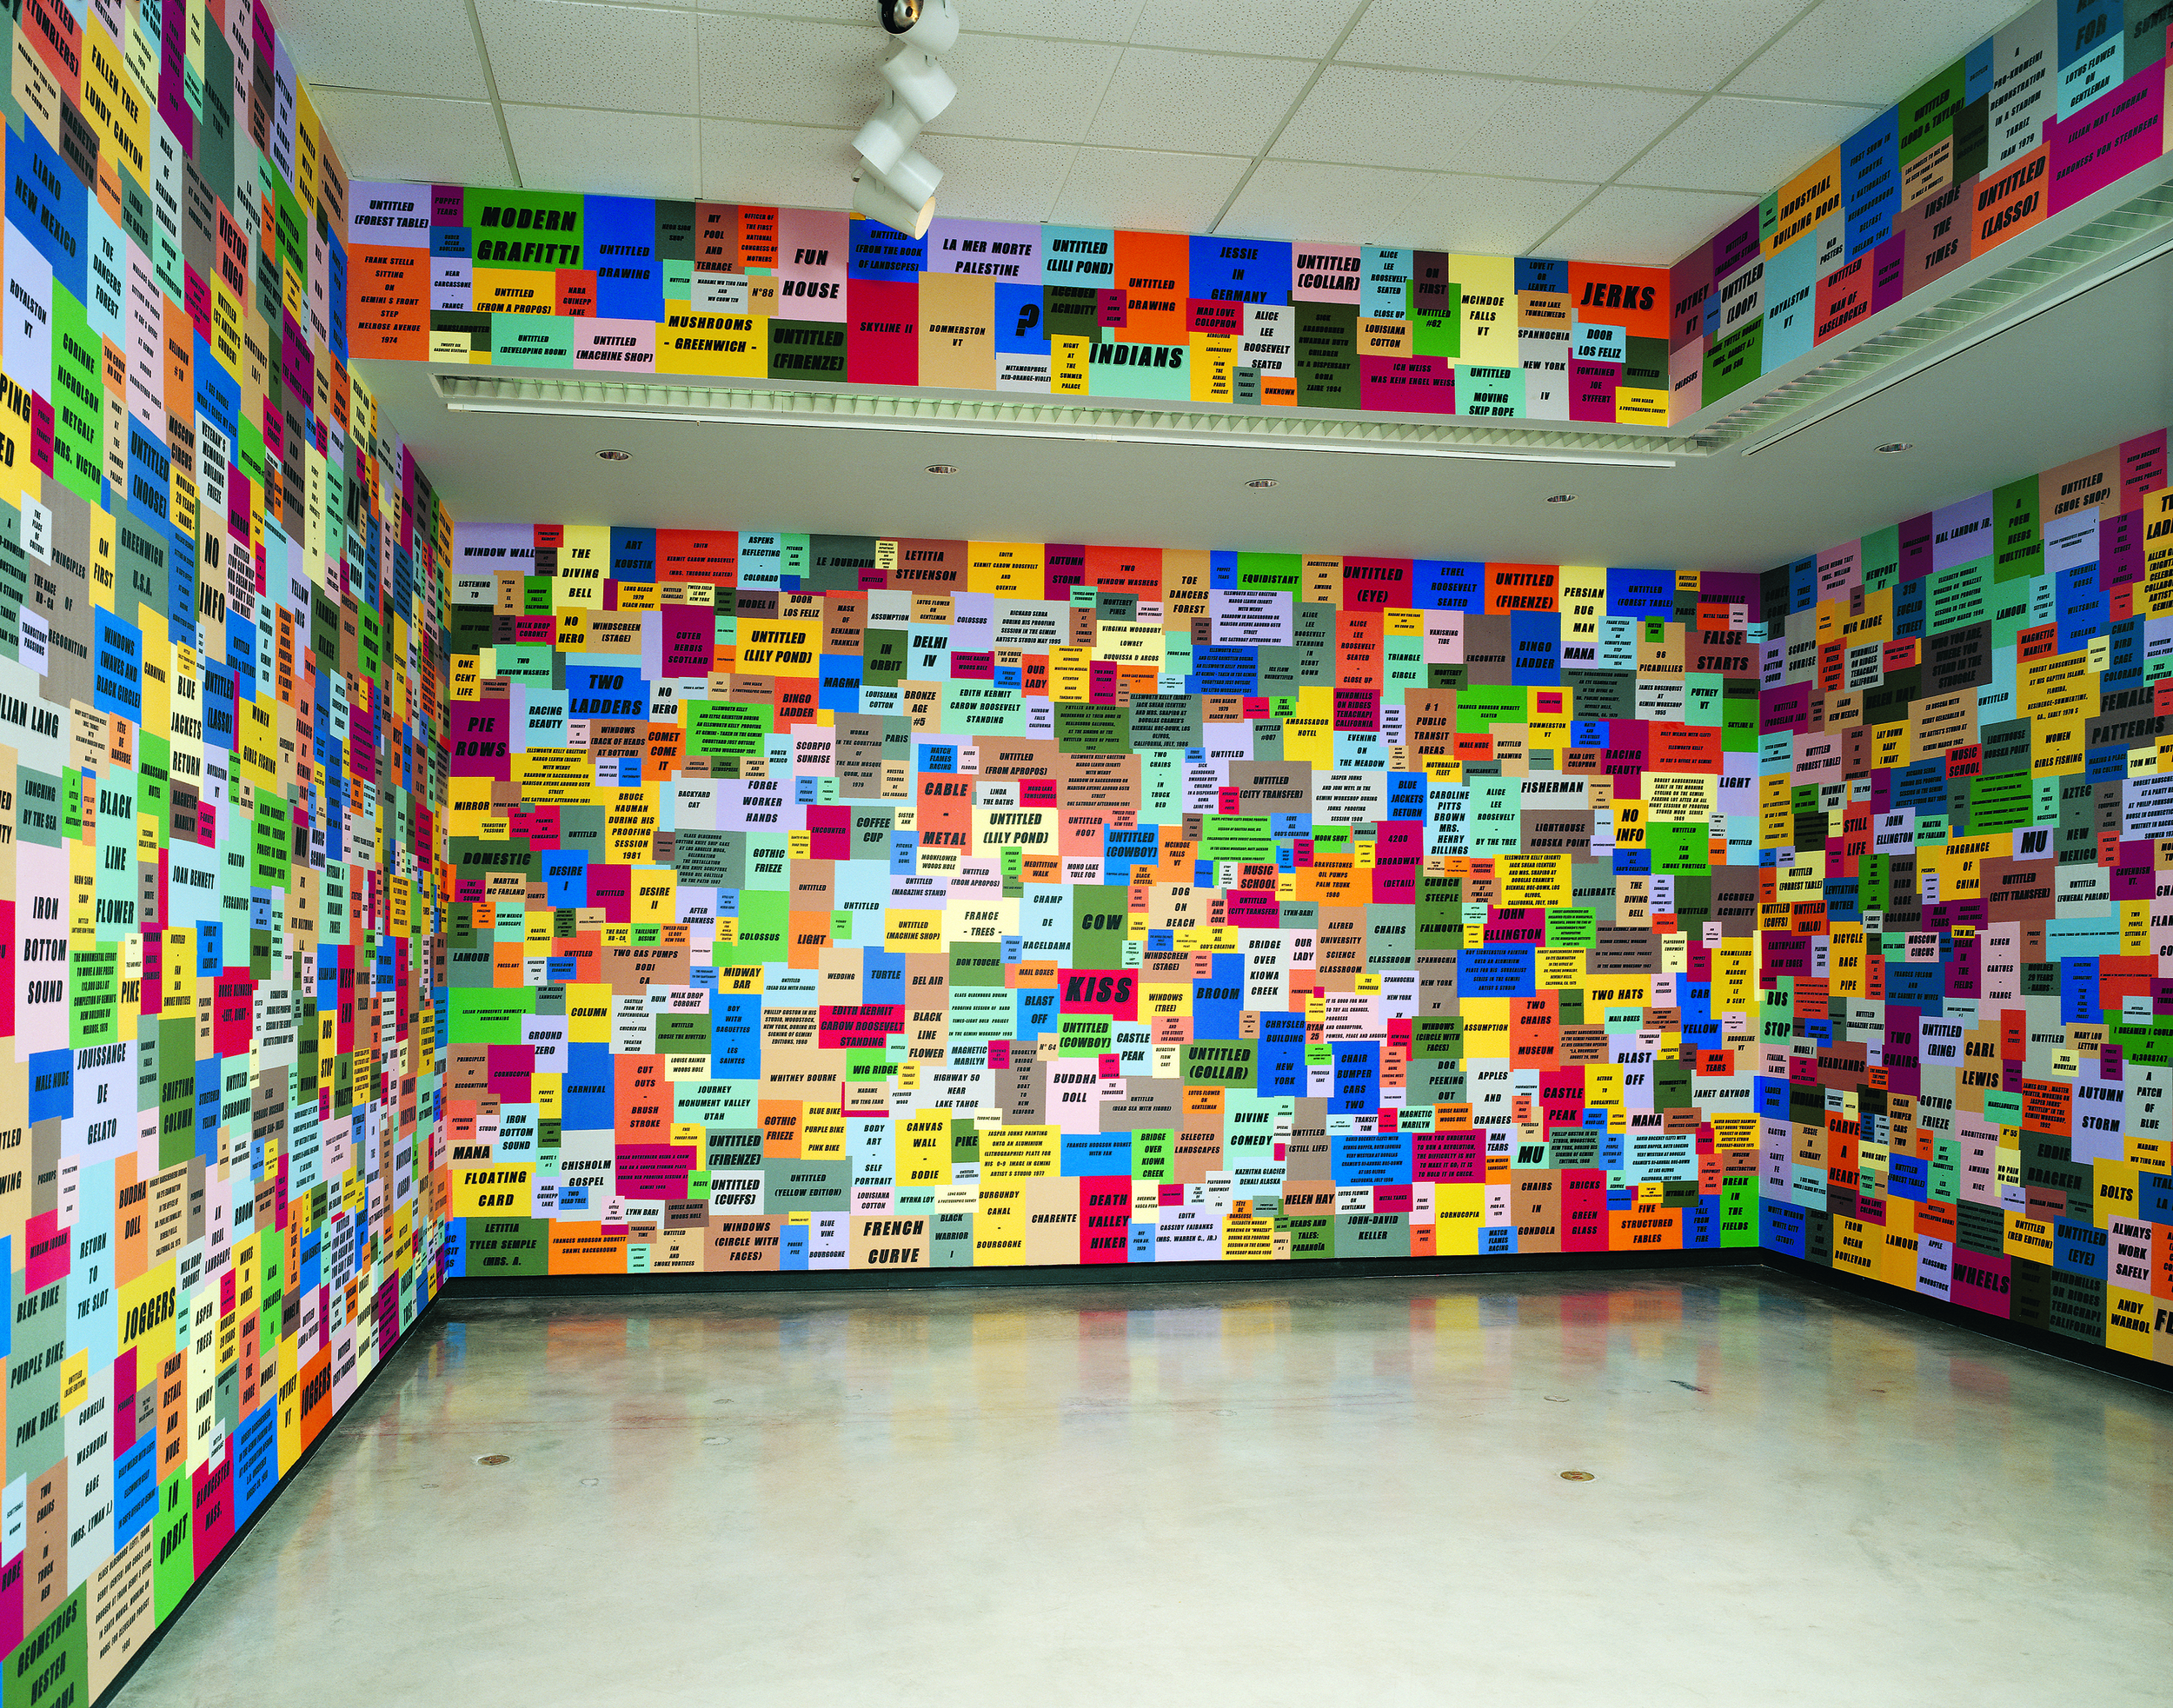 A COLLECTION (1996) SHEETS OF PAPER PASTED ON A WALL